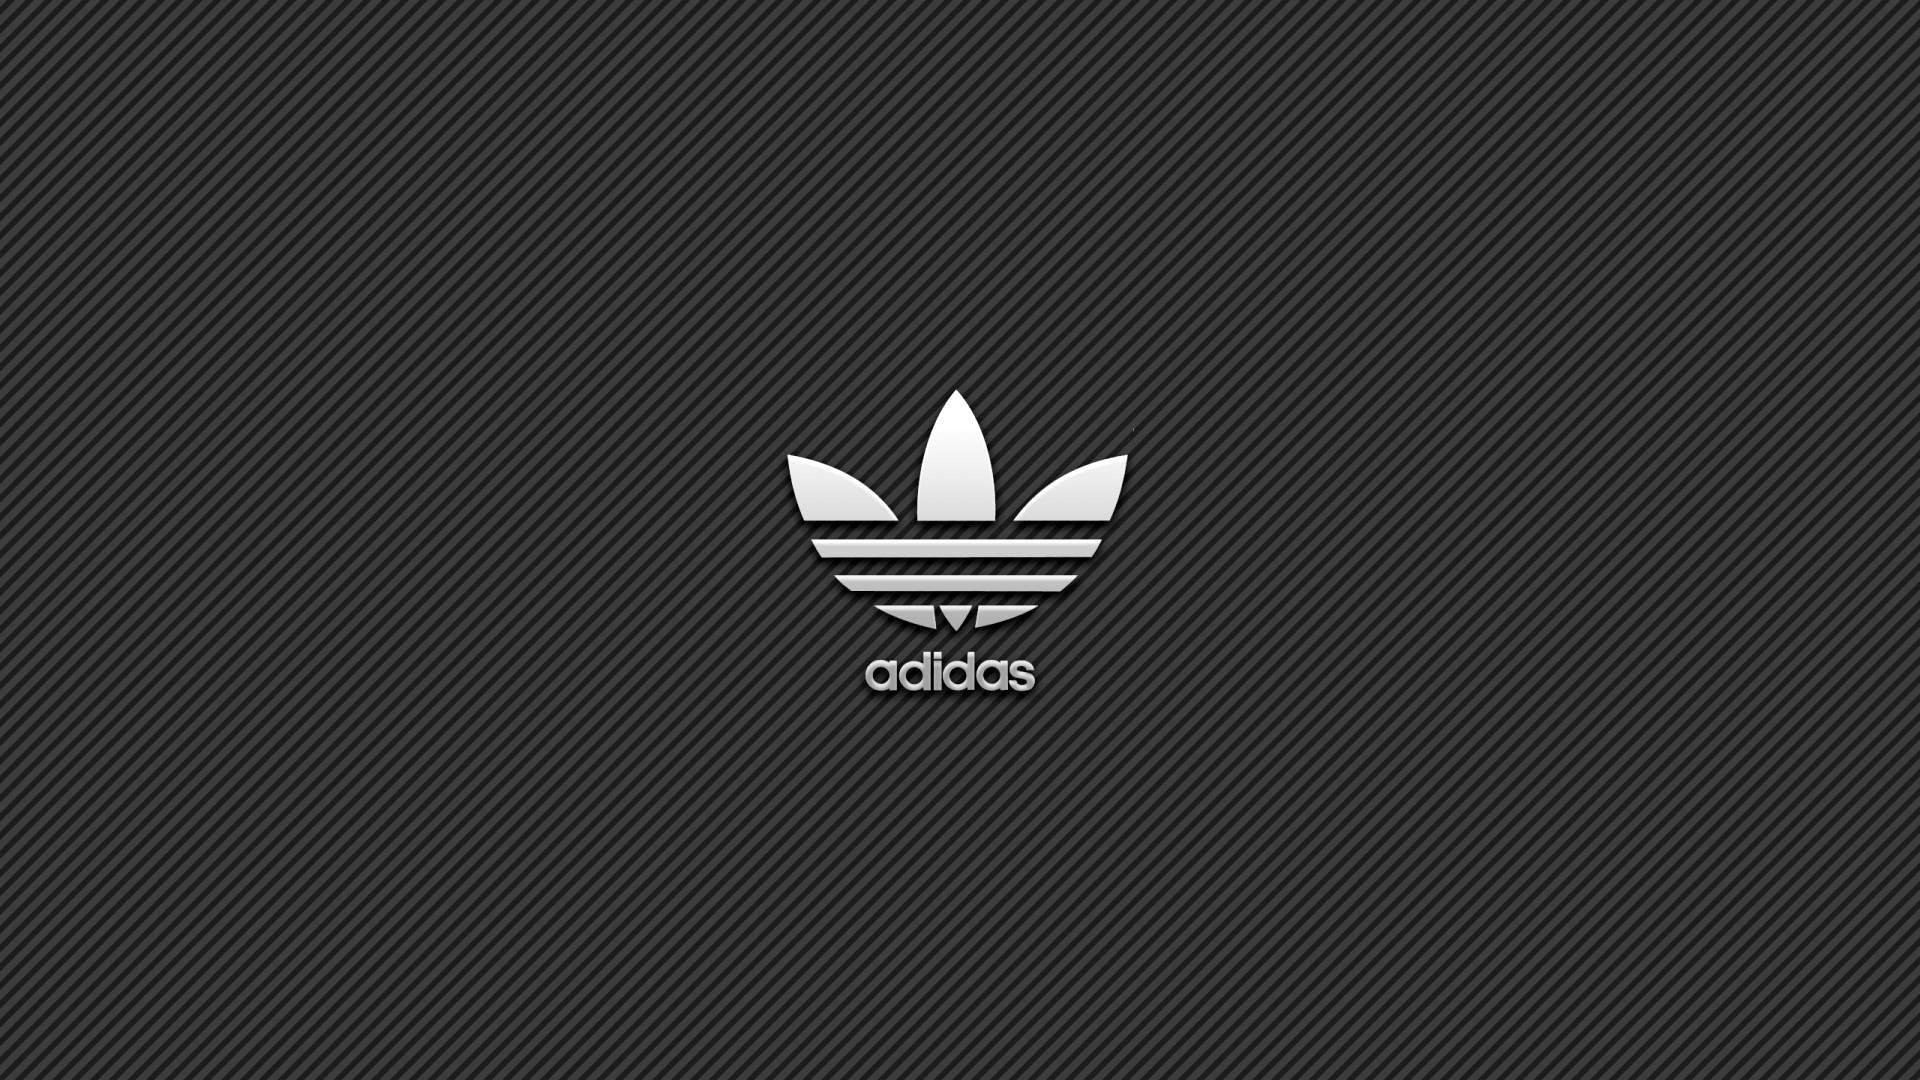 1920x1080 1920x1080 Products - Adidas Wallpaper